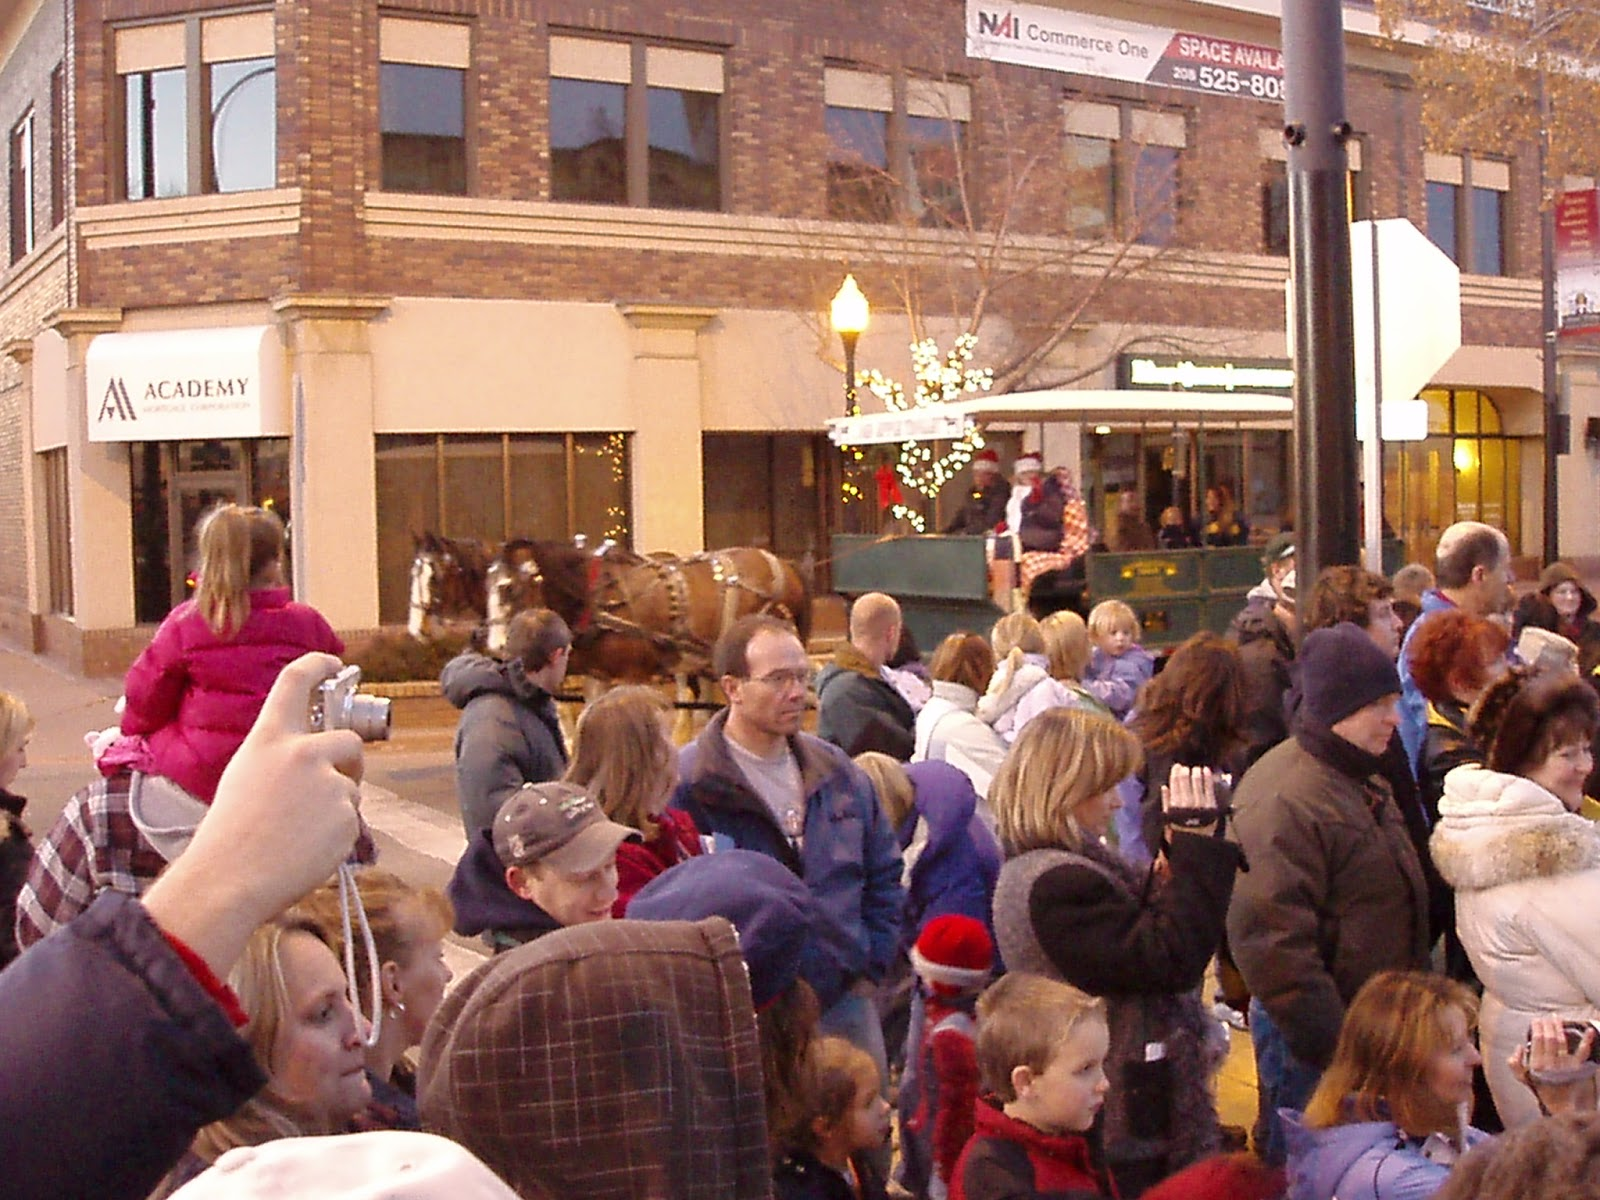 Idaho corporate income tax due date - The Crowd Downtown For The 2011 Idaho Falls Tree Lighting Ceremony